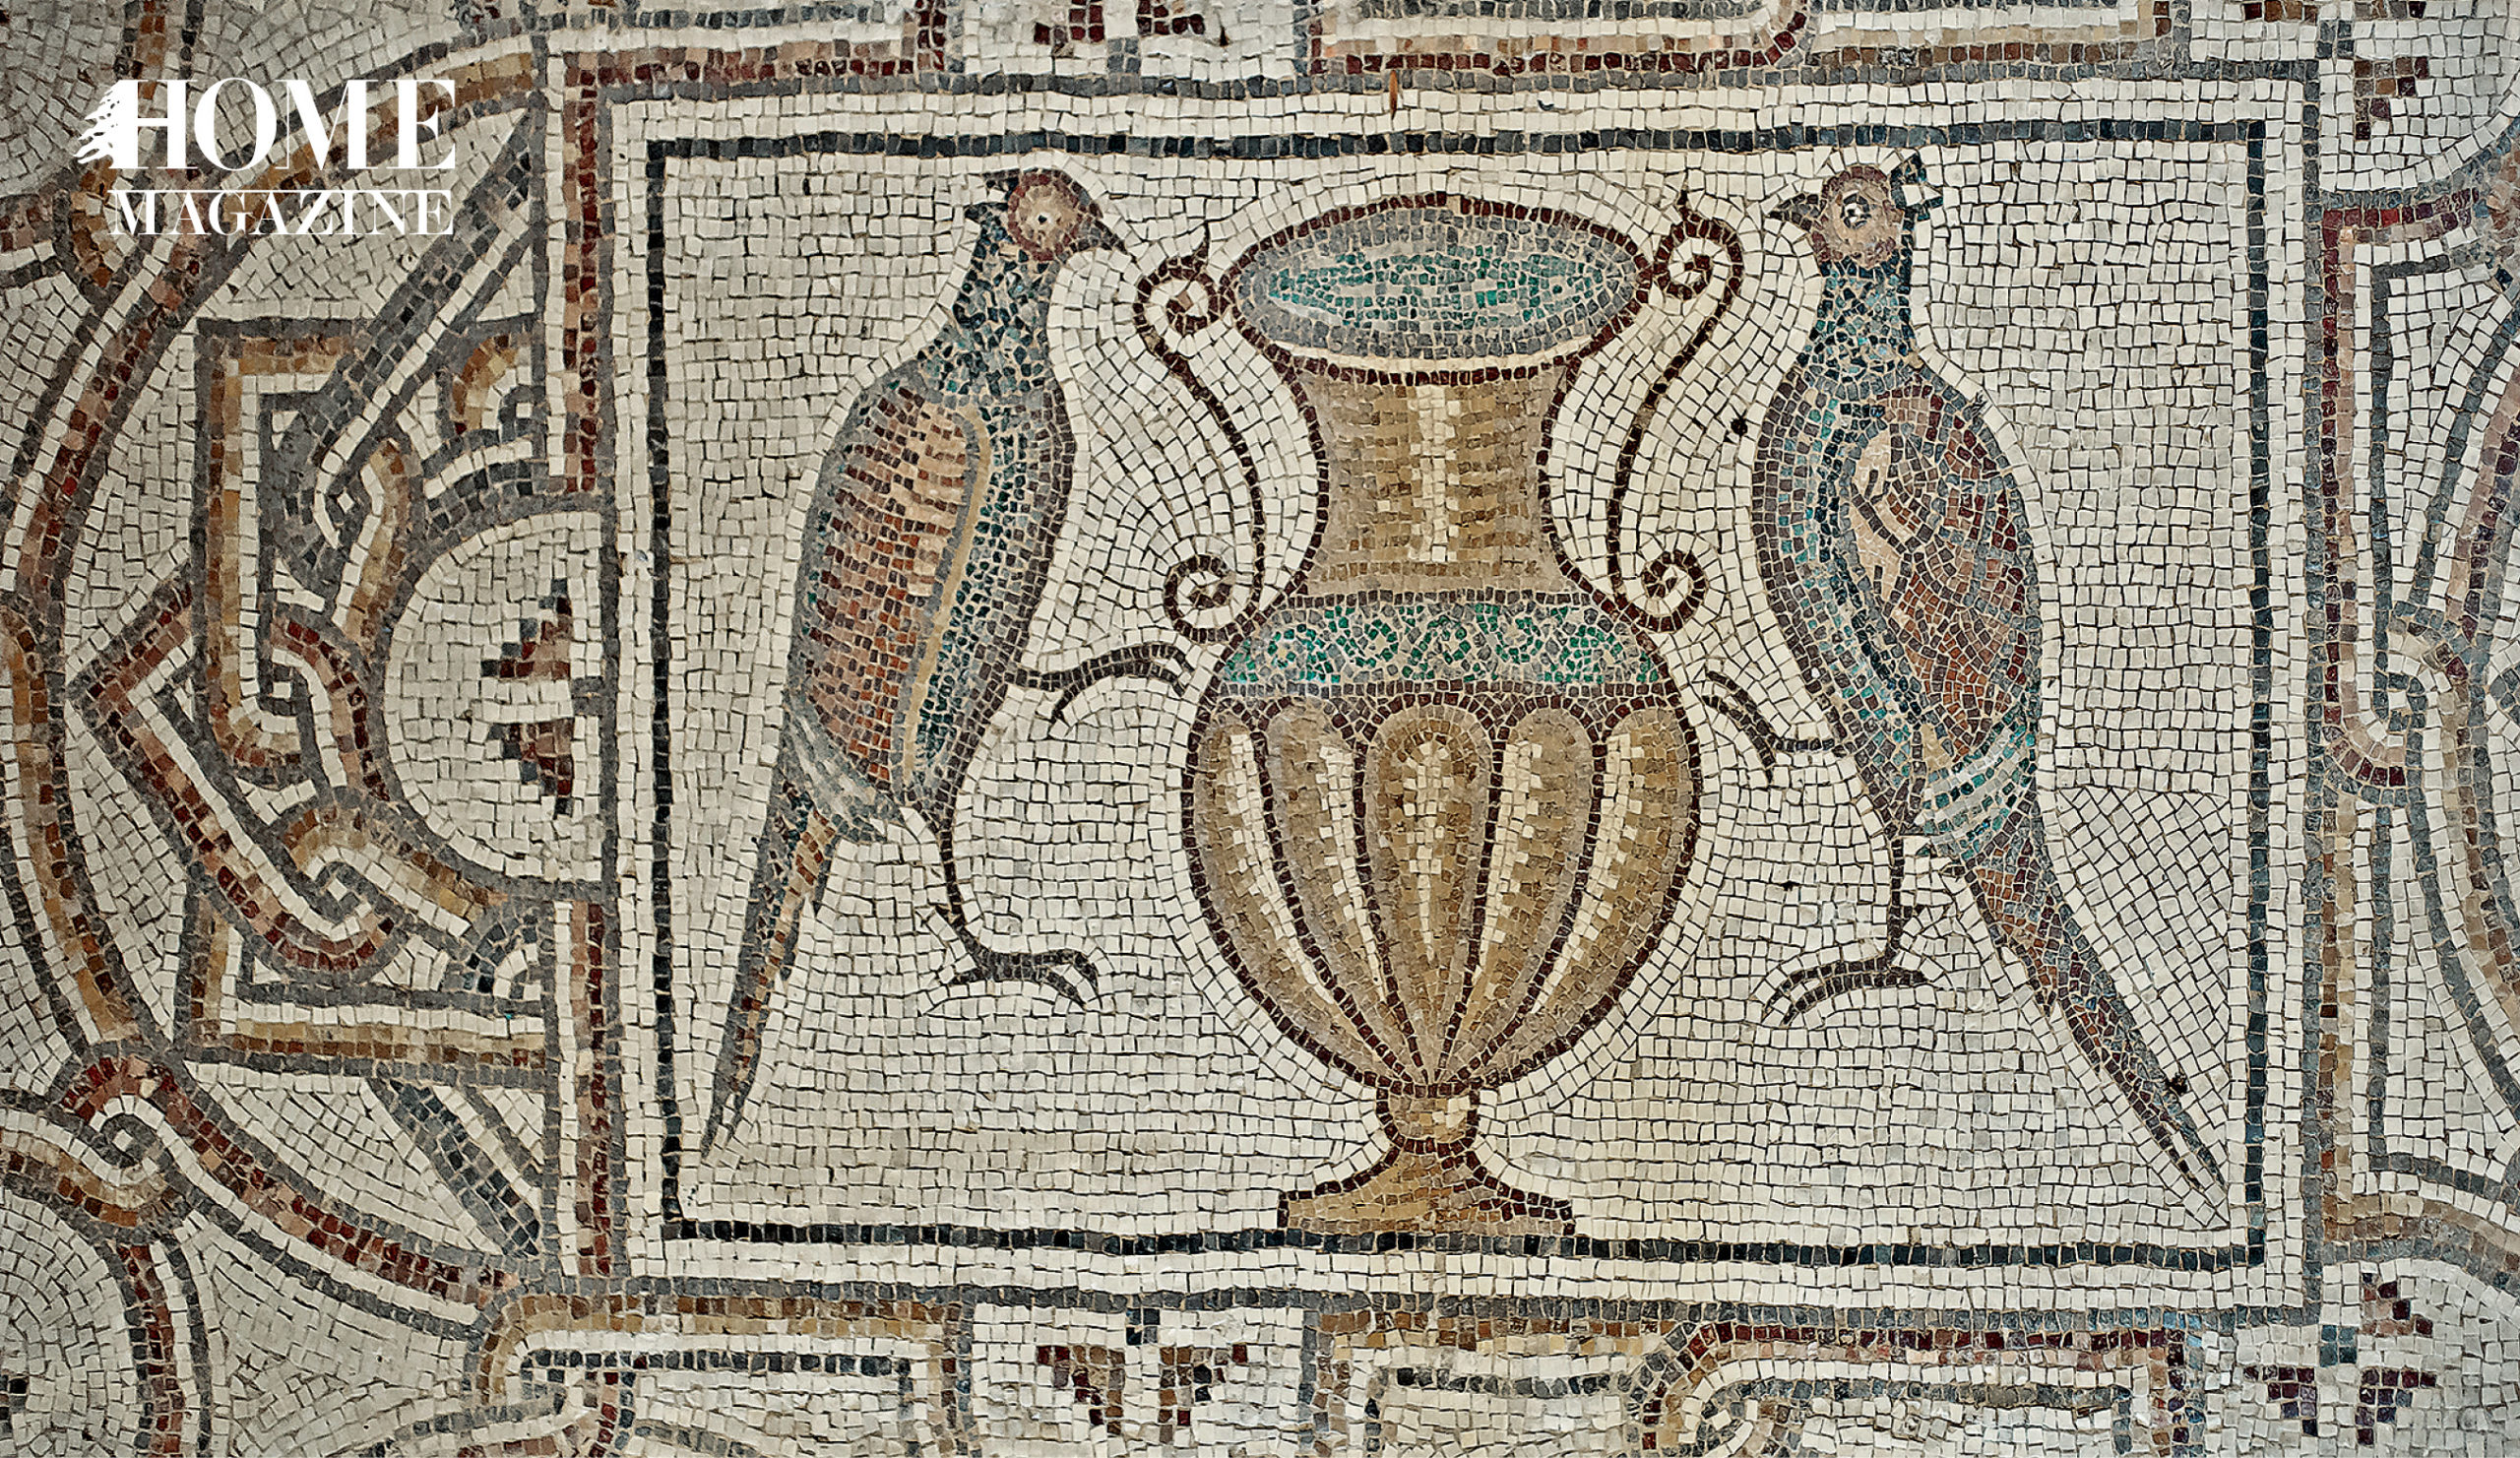 Illustration of two birds and a vase in mosaic